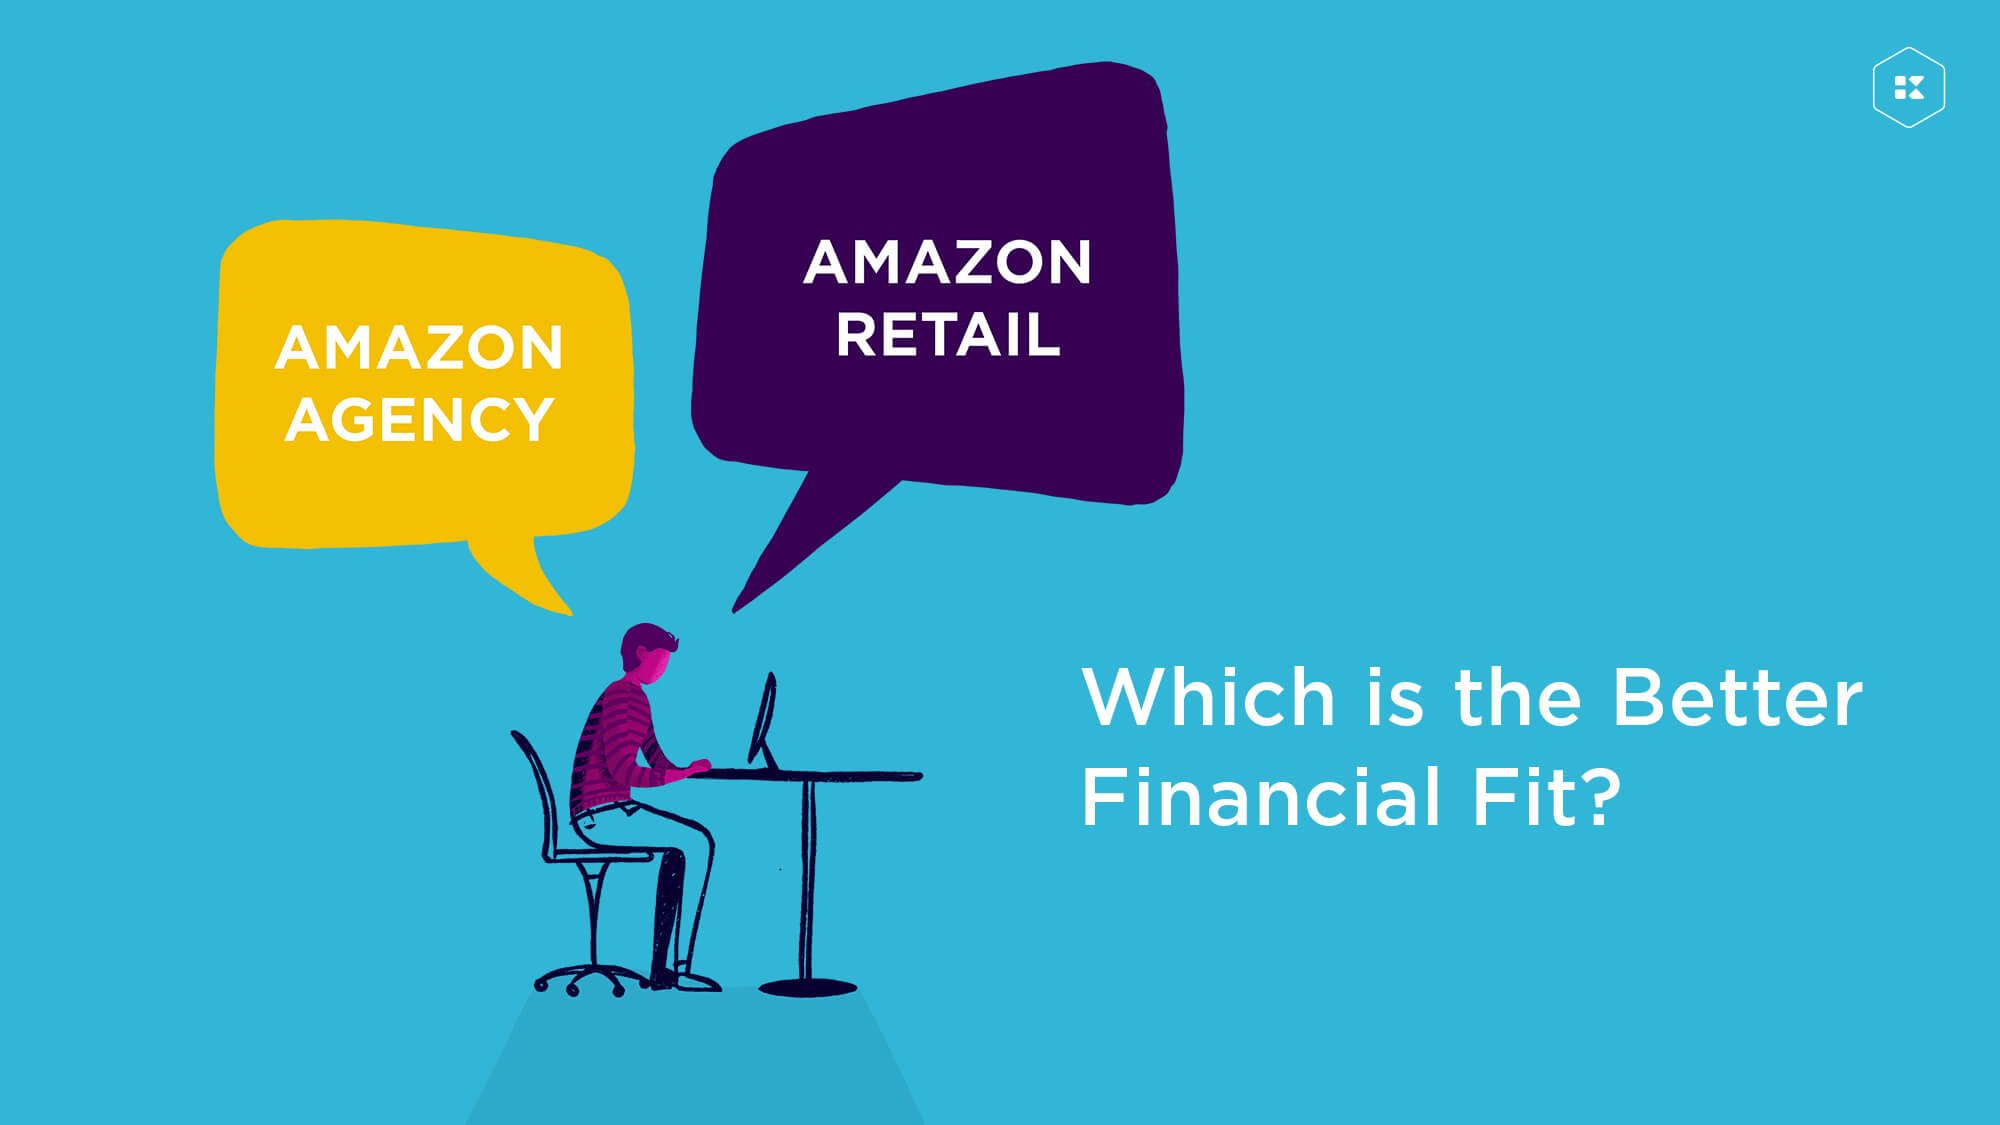 Amazon Retailer vs Amazon Agency: Which is the Better Financial Fit?